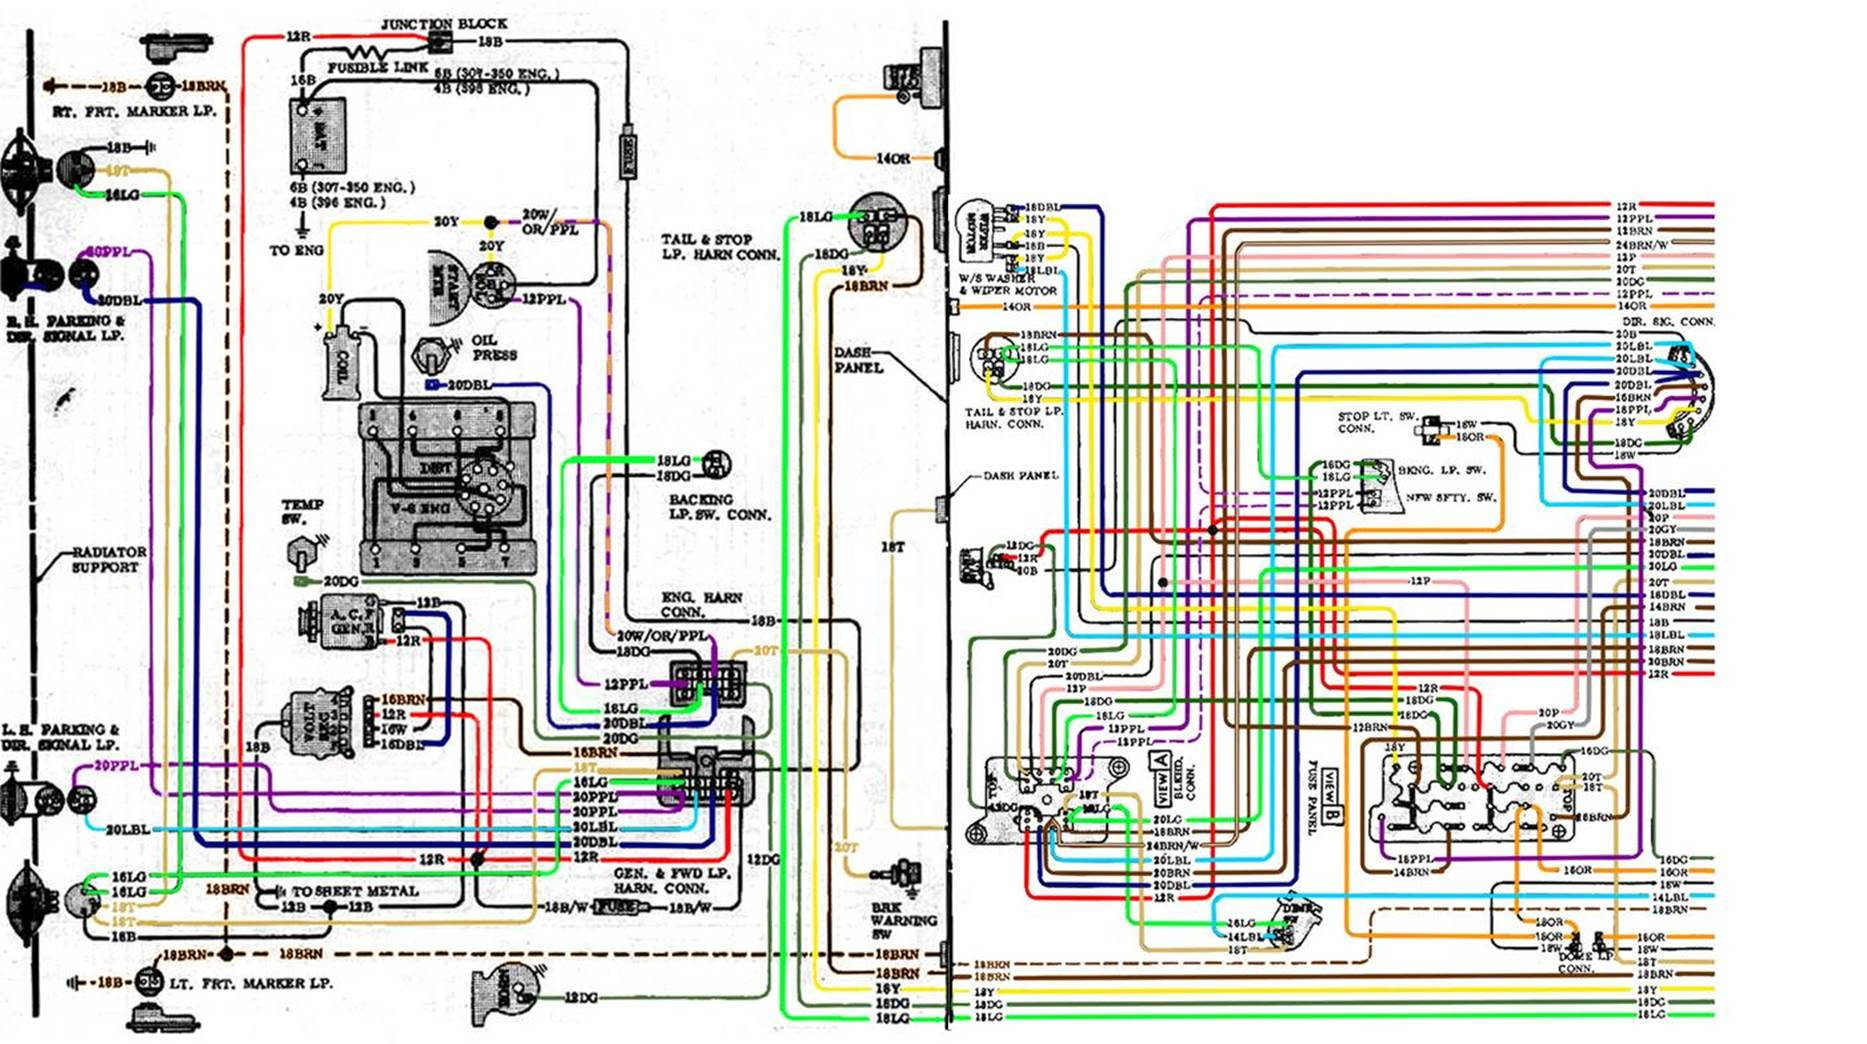 image002 67 72 chevy wiring diagram  at fashall.co